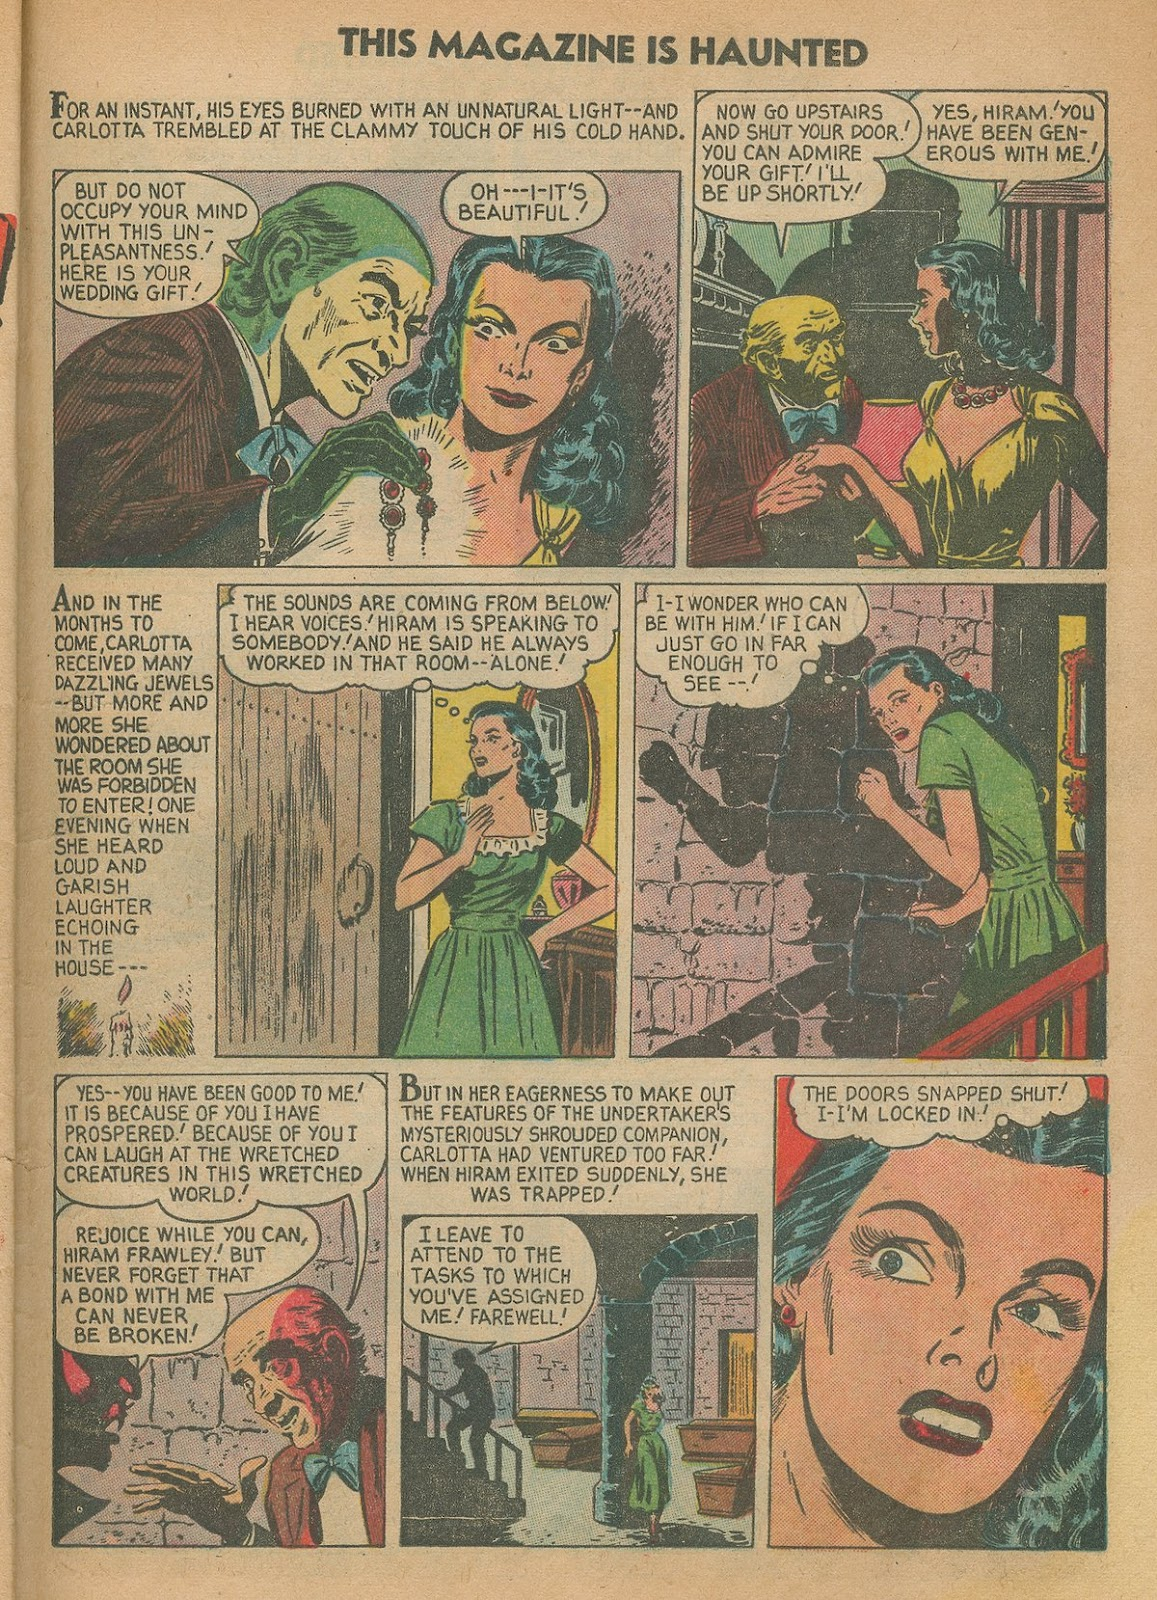 Read online This Magazine Is Haunted comic -  Issue #19 - 25